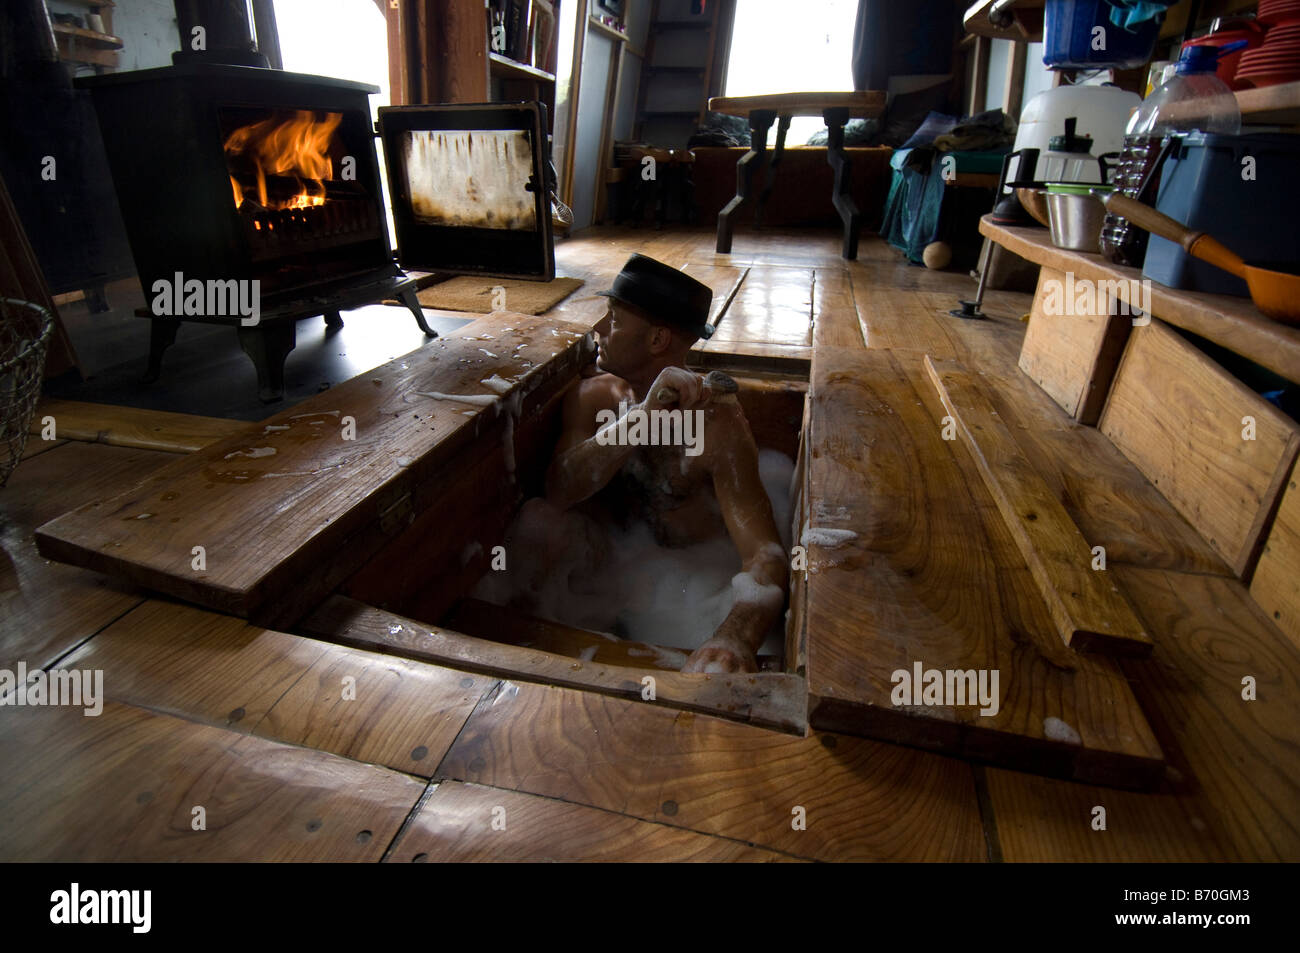 Man Bathing In His Hand Made Wood Cabin Where Bath Is Set Under The Kitchen  Floor And Water Heated On Wood Fired Stove.